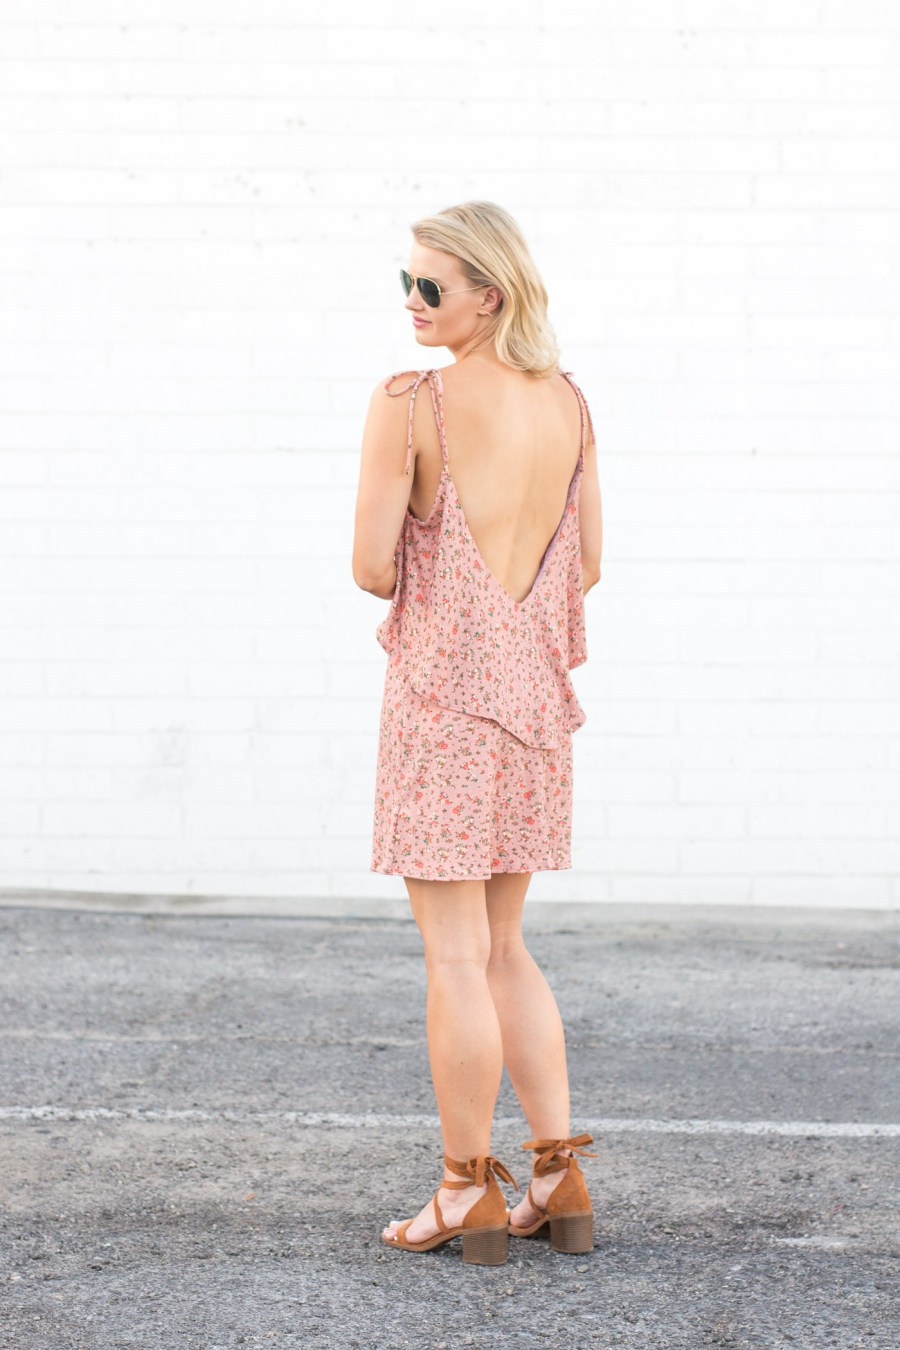 The $27 Lace-Up Sandals You Will Wear All Summer Long, Target Sandals, summer outfit idea, fashion blog, Treats and Trends